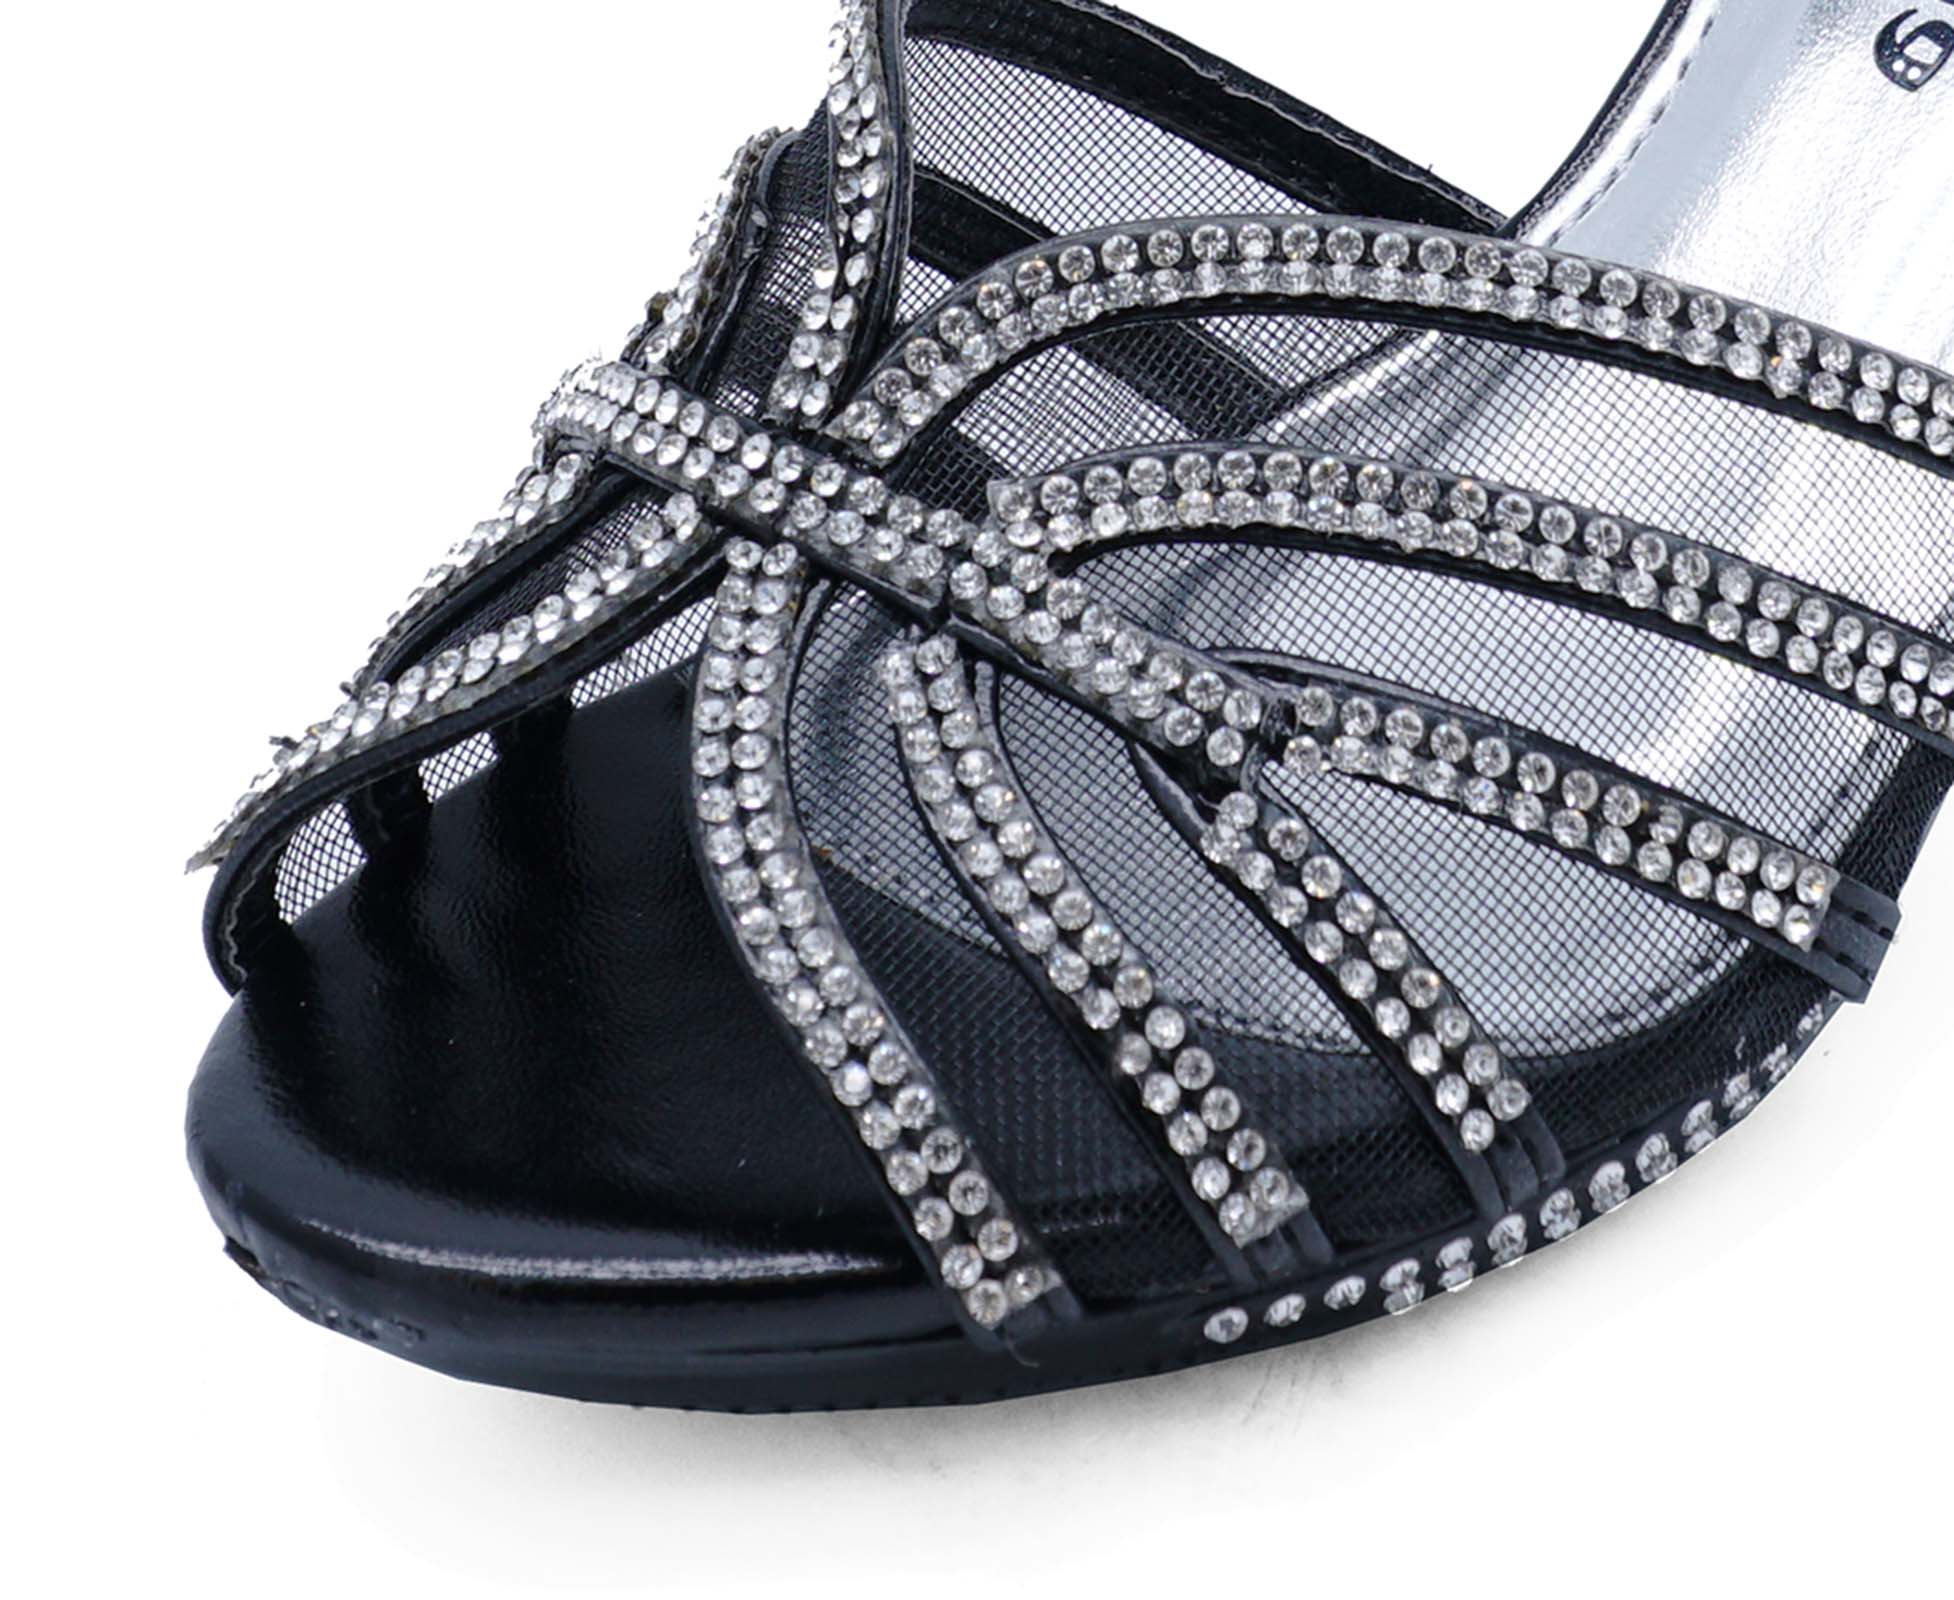 b93111714 Sentinel GIRLS CHILDRENS BLACK DIAMANTE LOW-HEEL SANDALS PRETTY PARTY DRESS  SHOES UK 10-2